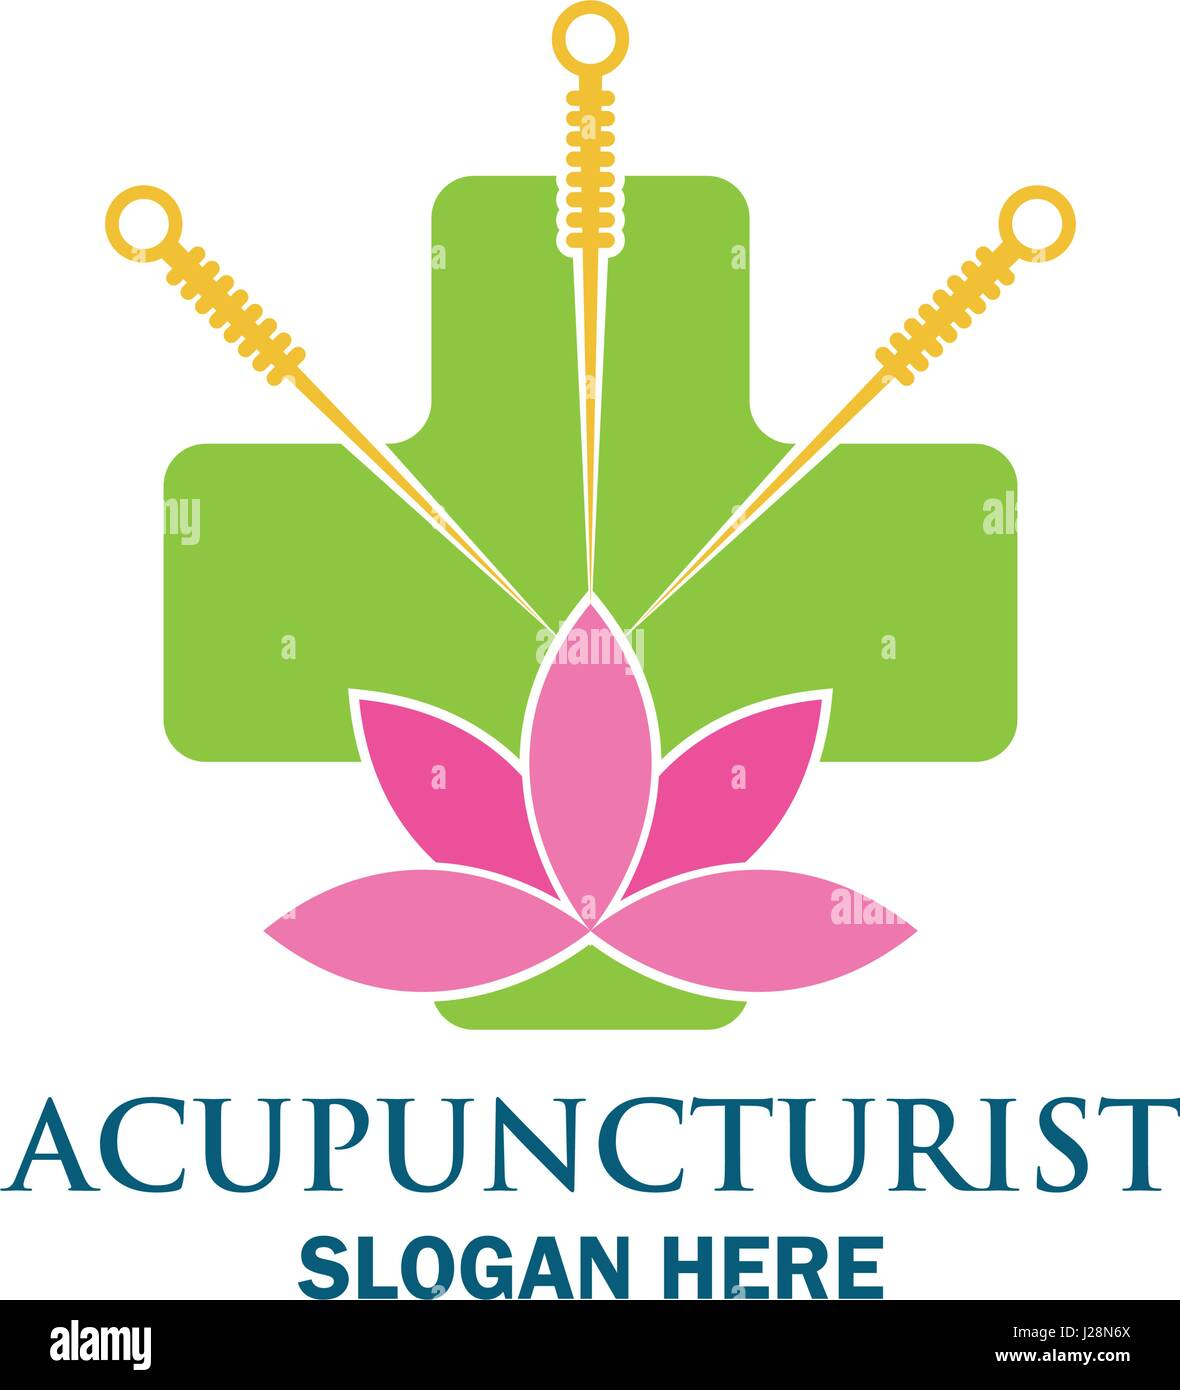 acupuncture therapy logo with text space for your slogan / tagline, vector illustration - Stock Vector